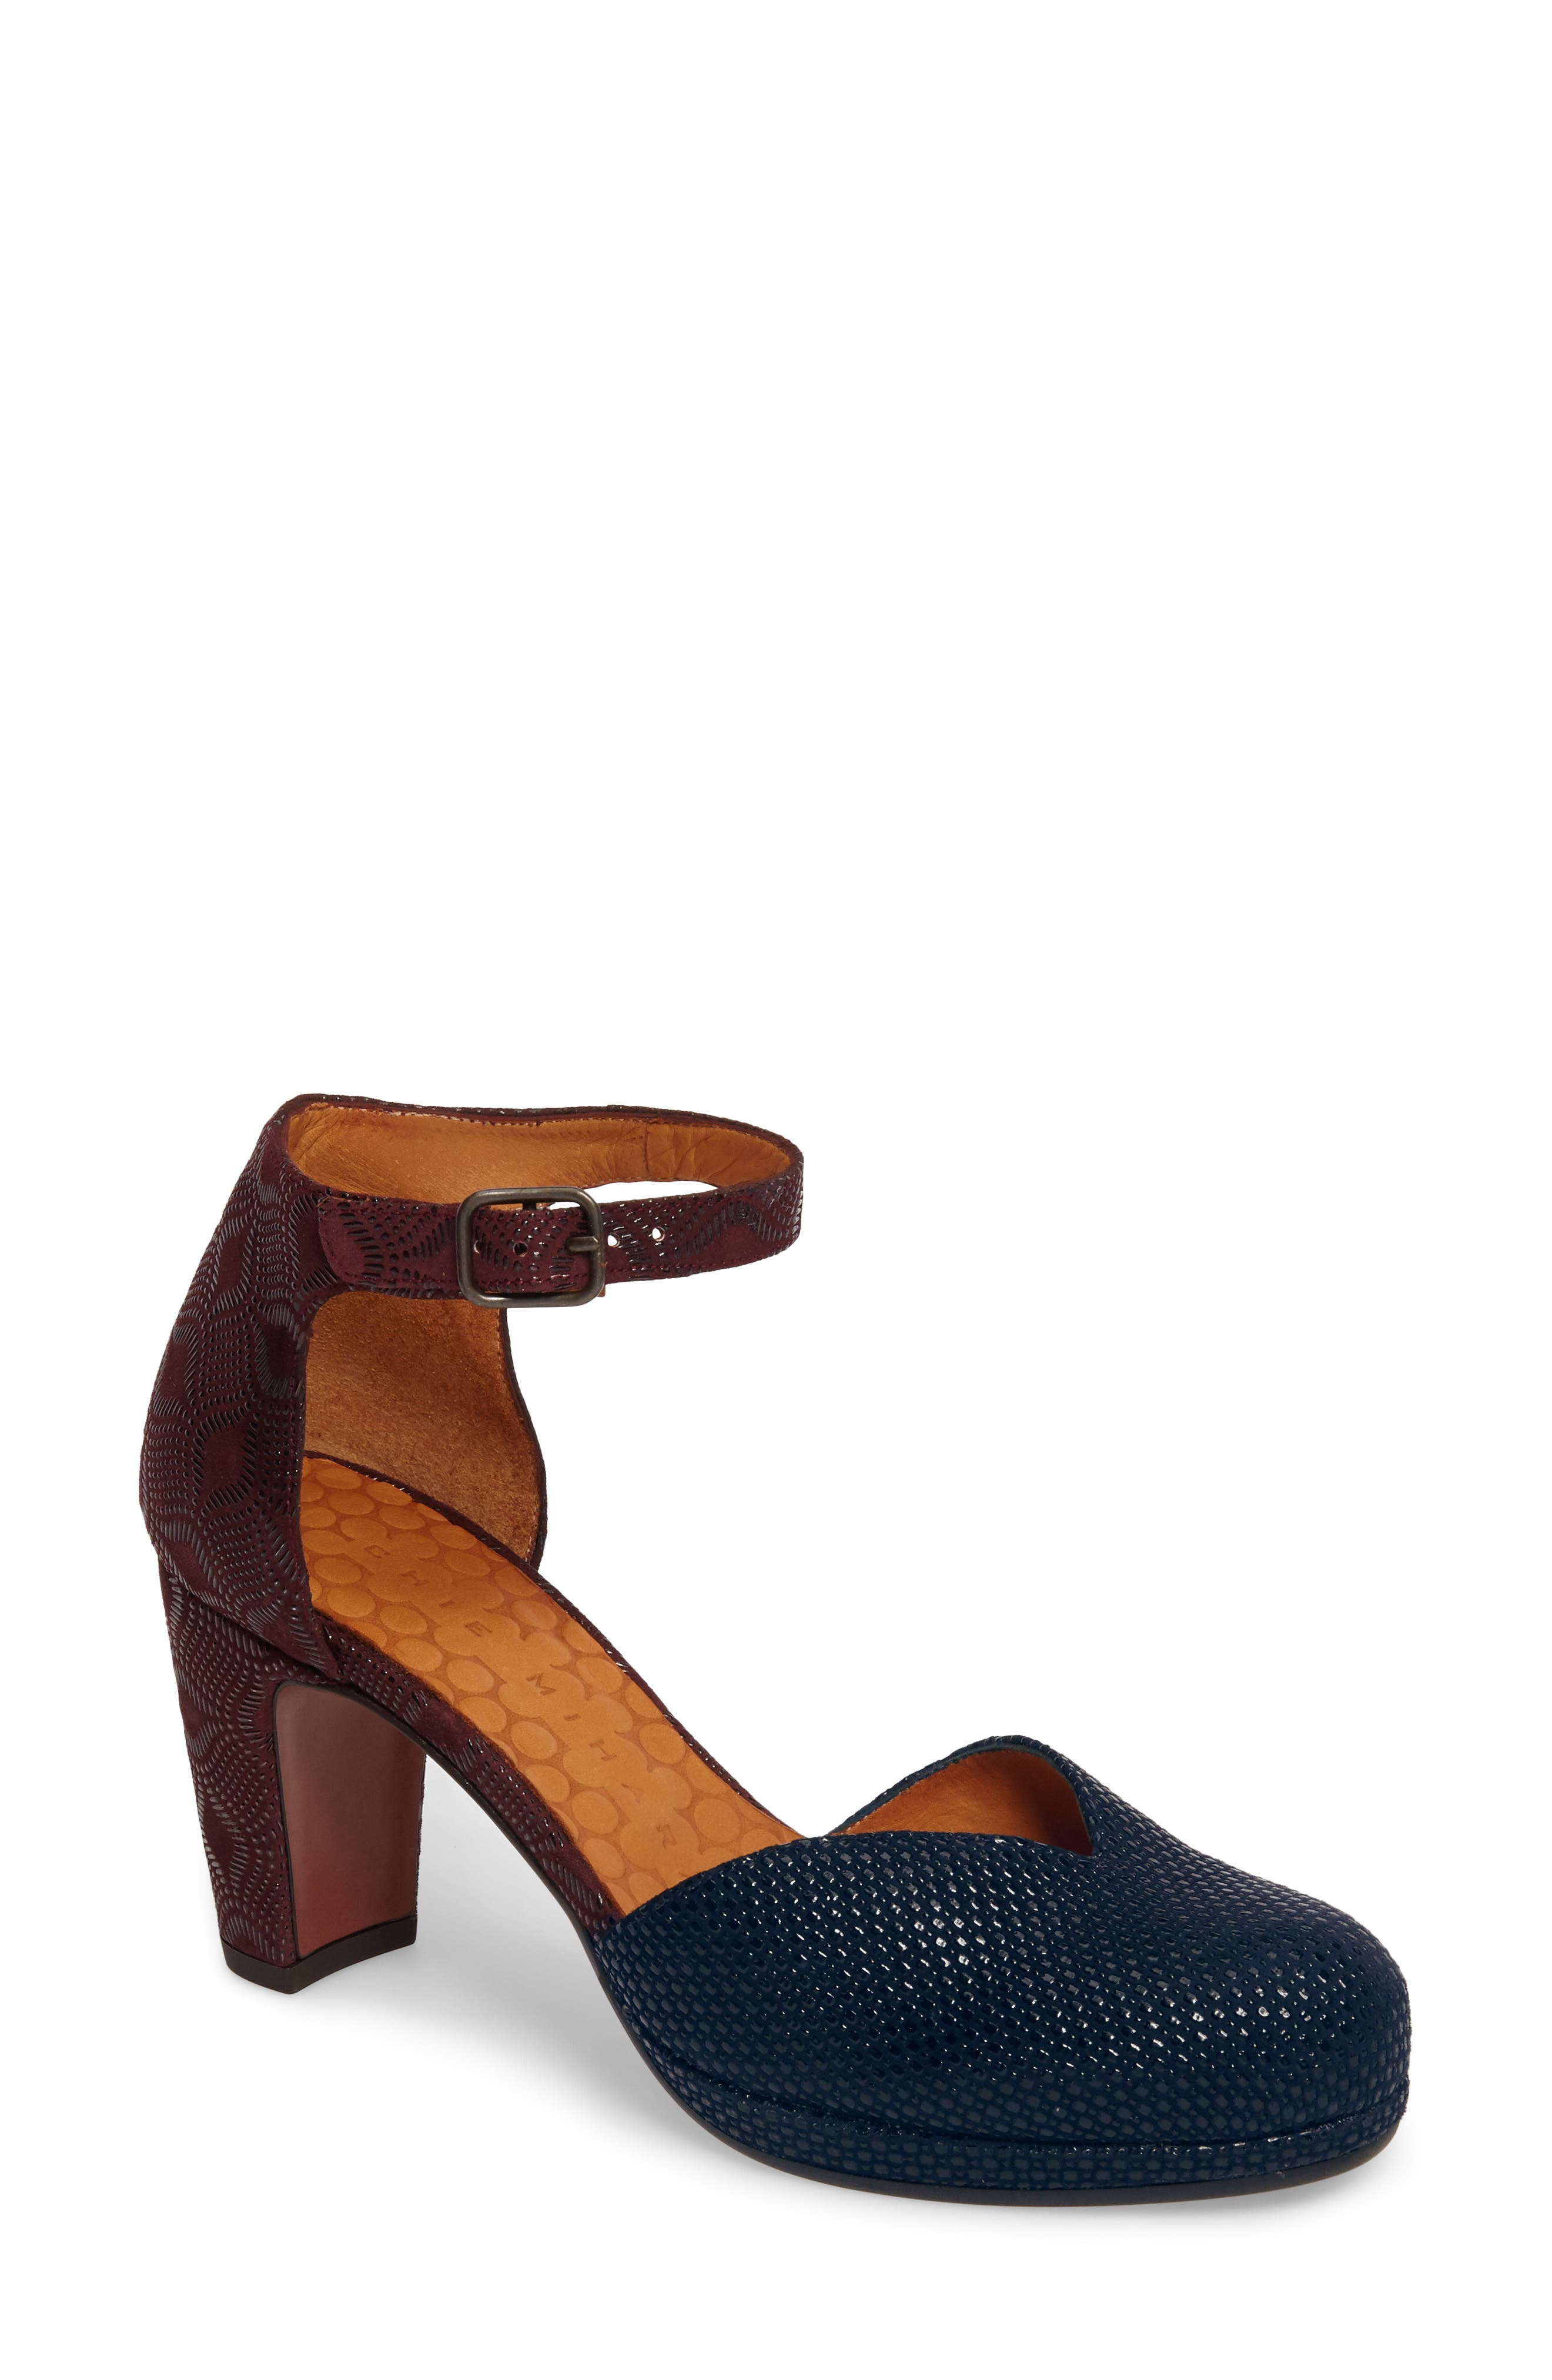 Maho d'Orsay Ankle Strap Pump,                         Main,                         color, Navy